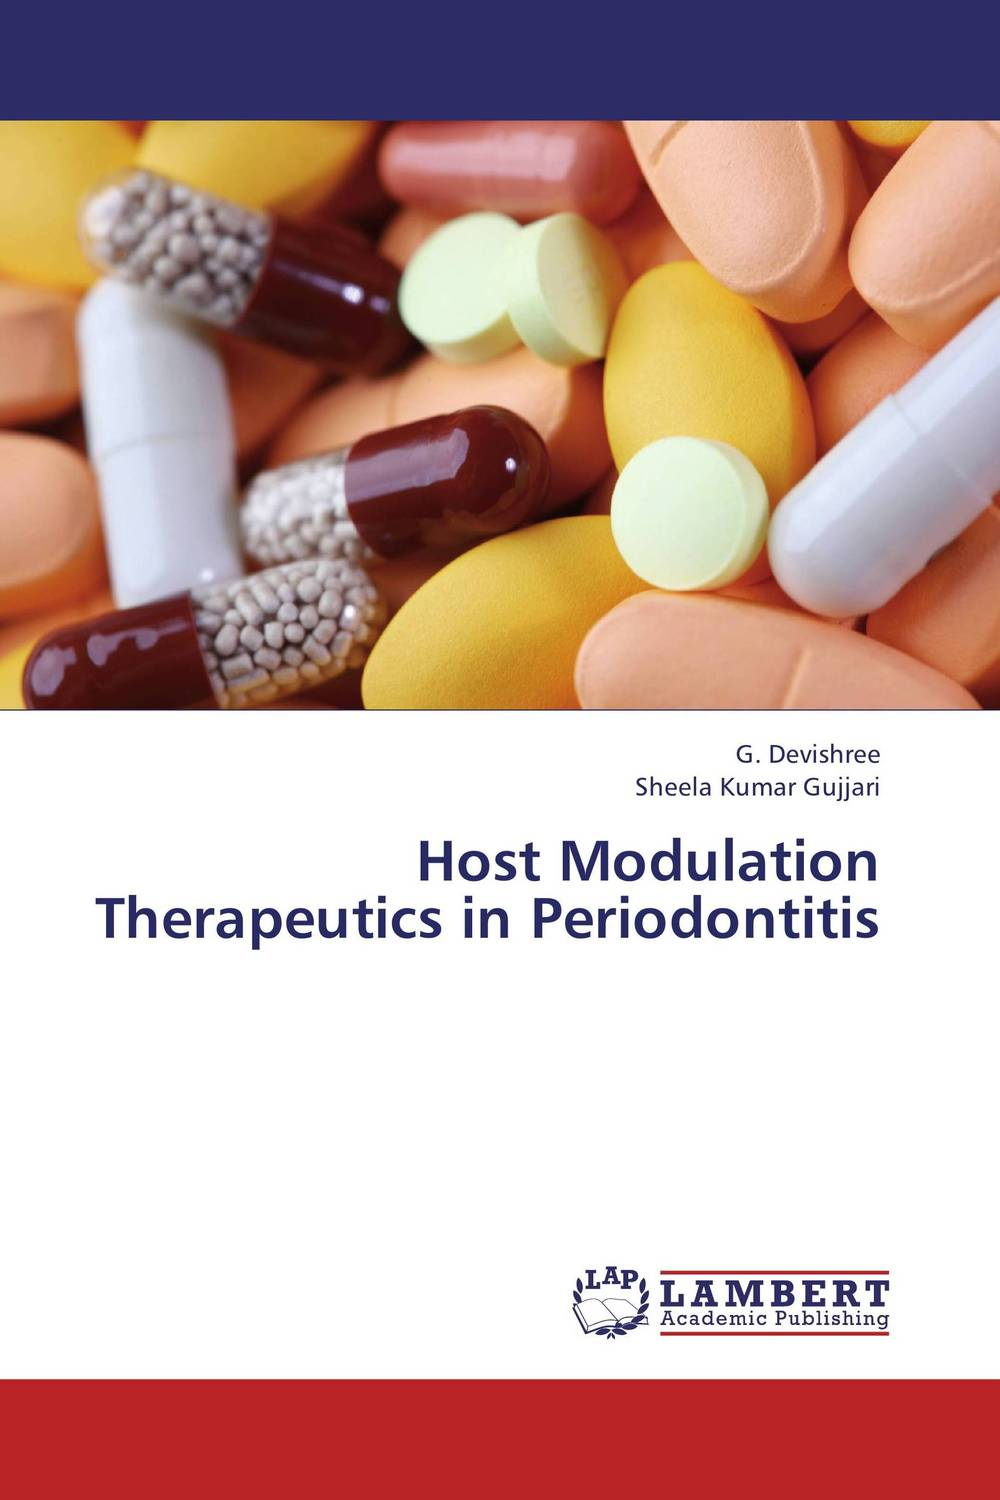 Host Modulation Therapeutics in Periodontitis vishnu gupta modulation of ovarian functions and fertility response using insulin